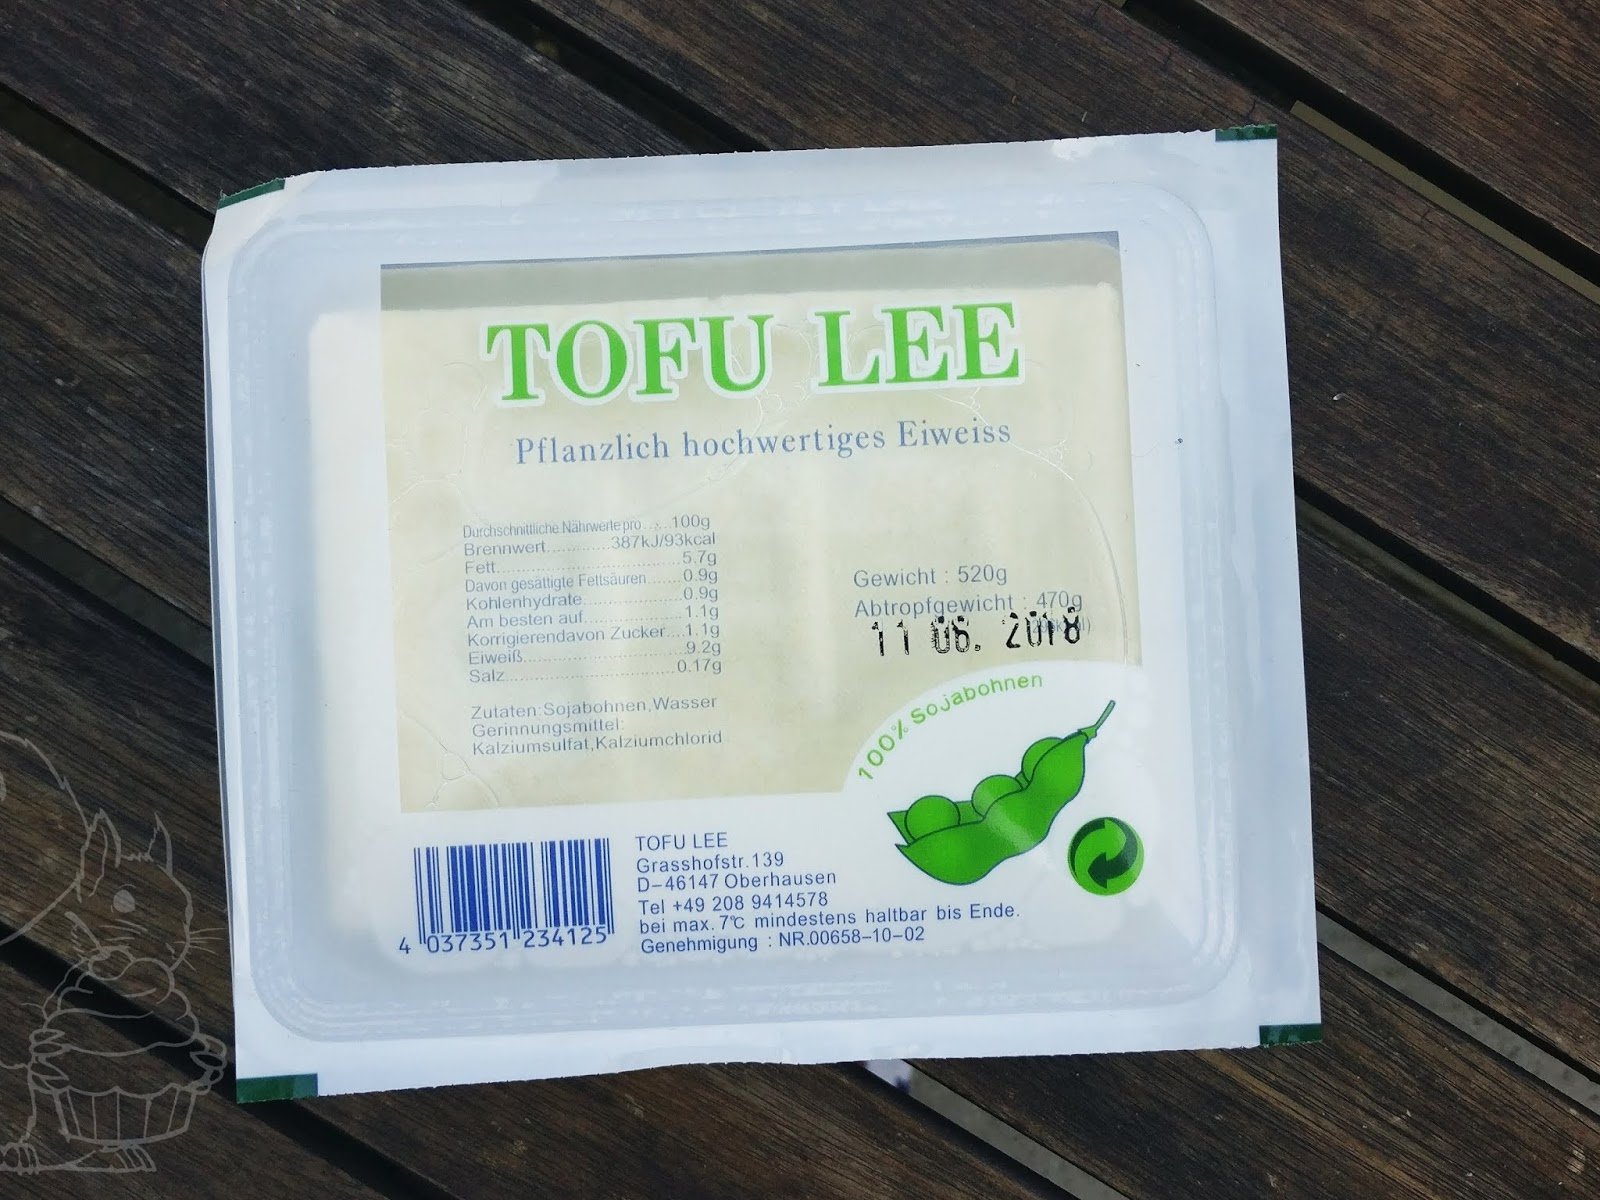 Elegant Tofu Nährwerte Foto Von My Favorite From The Asian Supermarket -